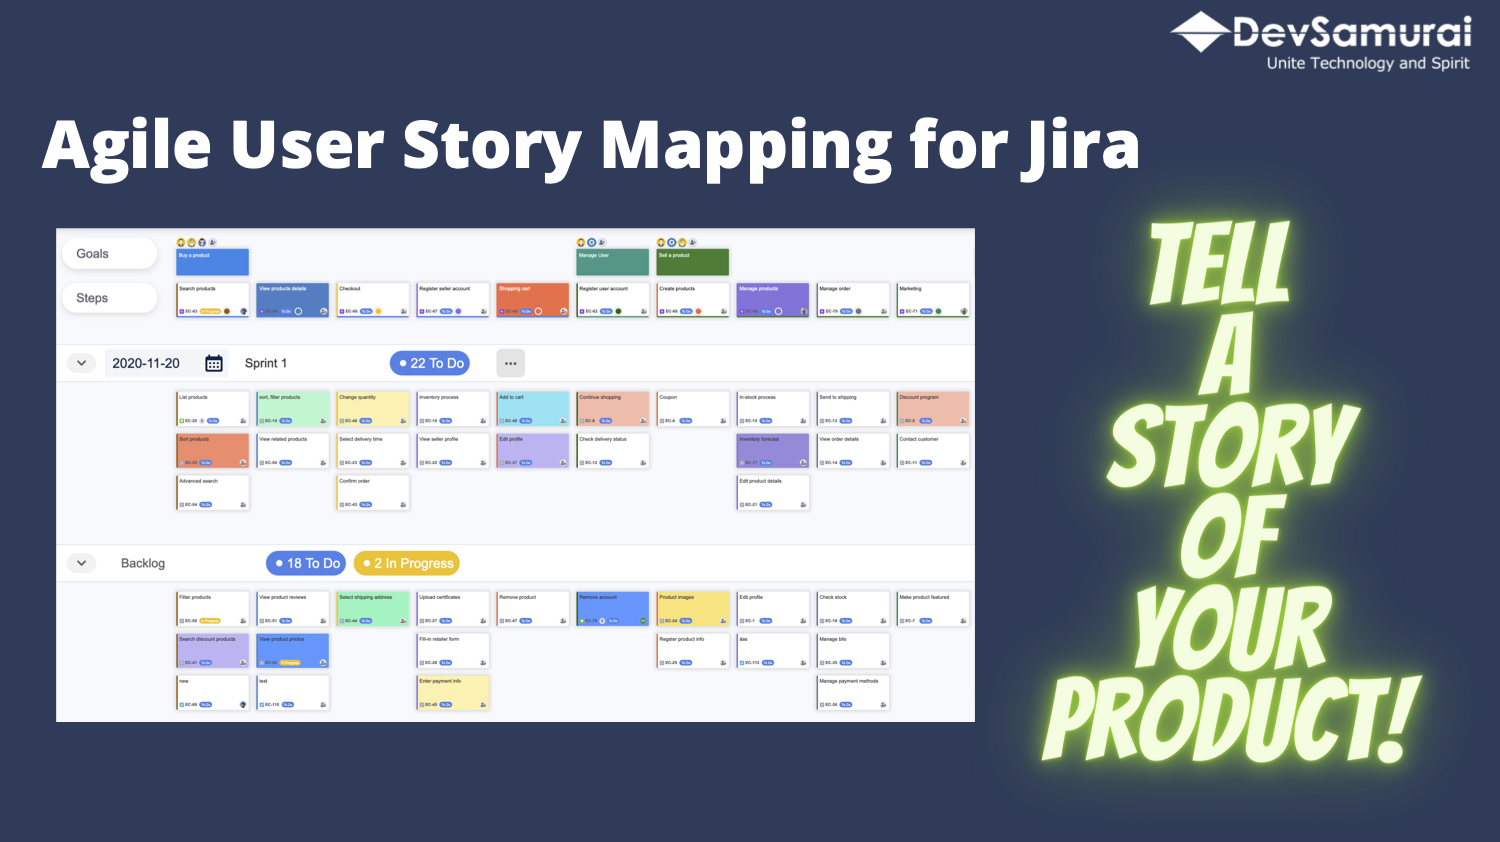 How to build products that your customers love with Agile User Story Mapping in Jira